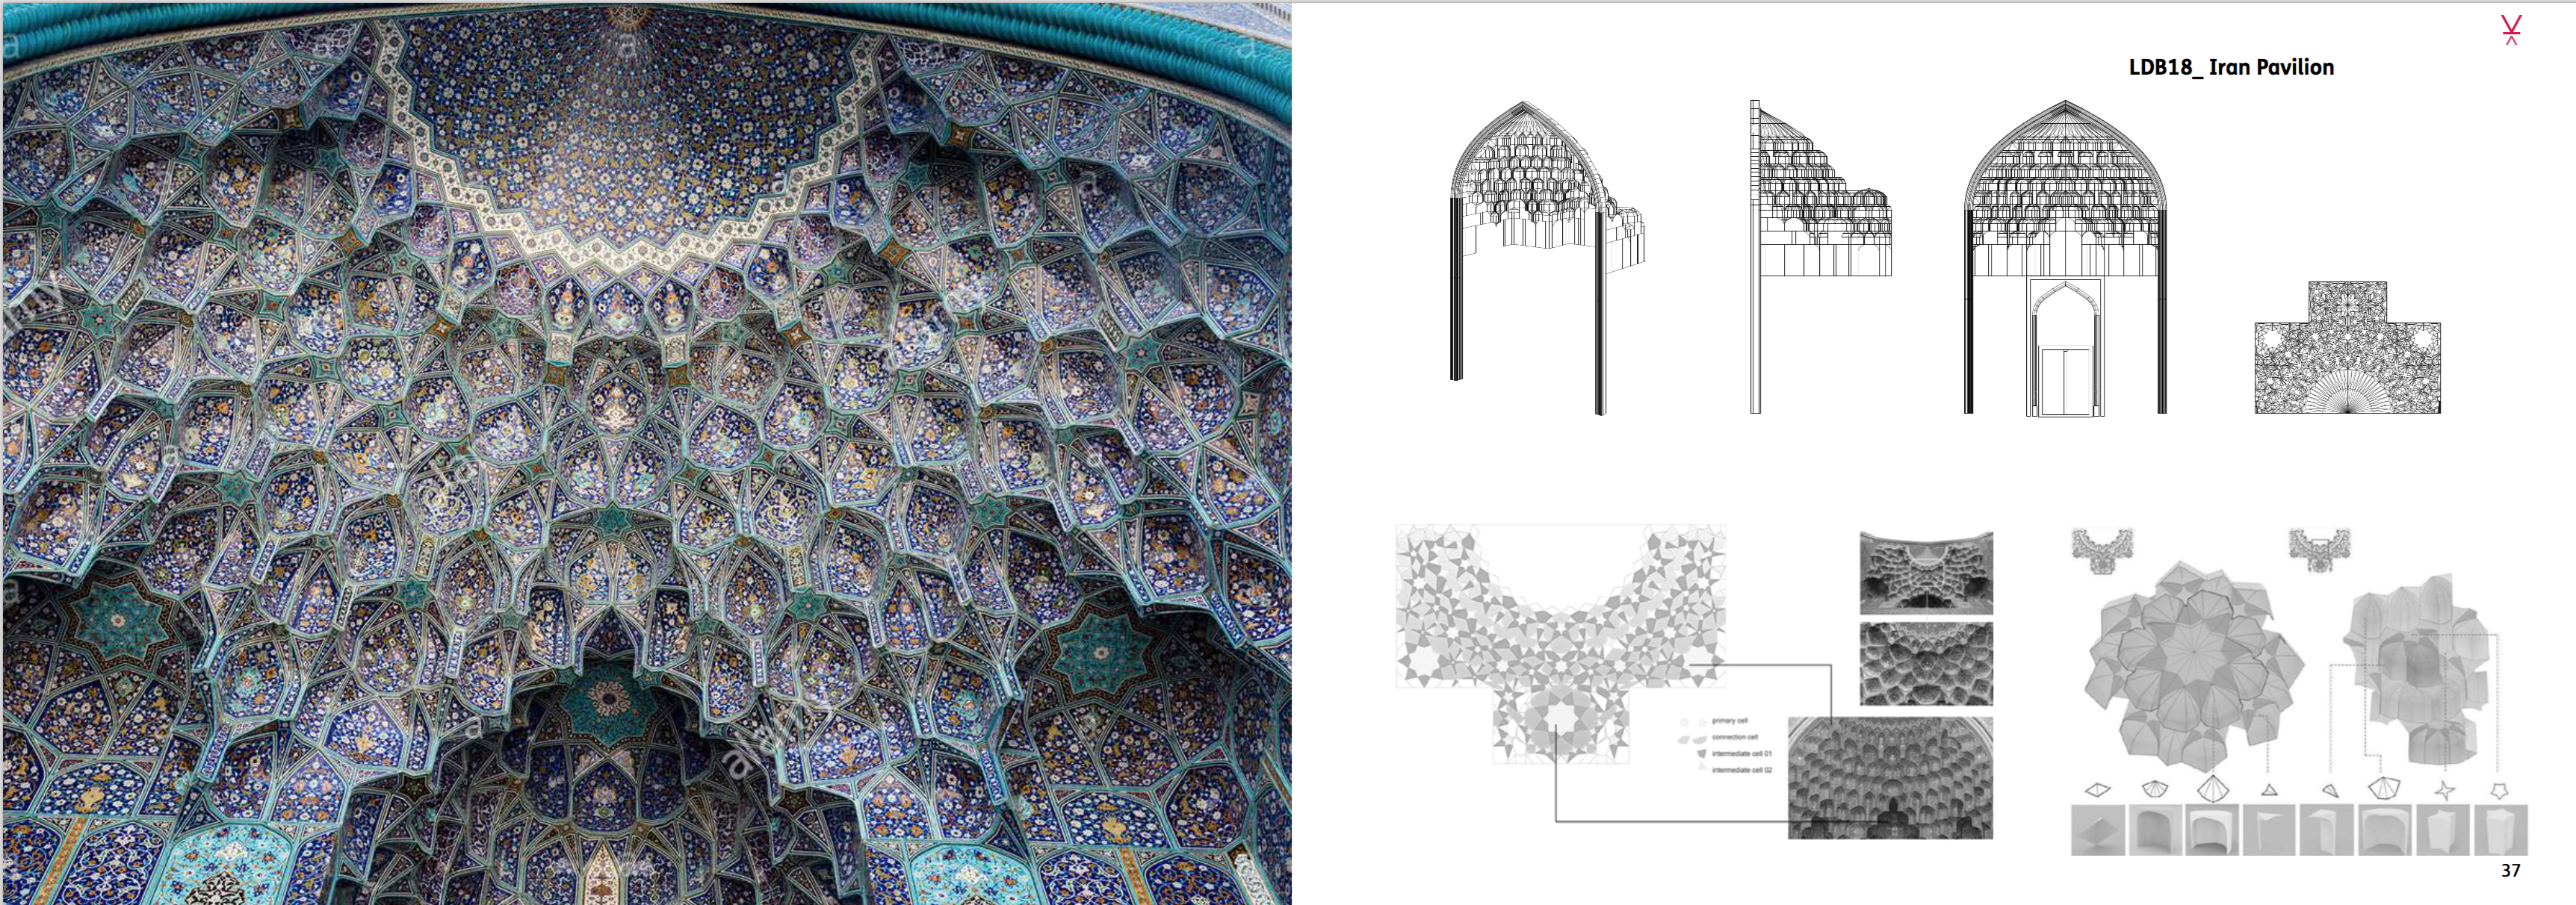 Kamvari Architects- Iran Pavilion- London Desing Biennale-Mosque